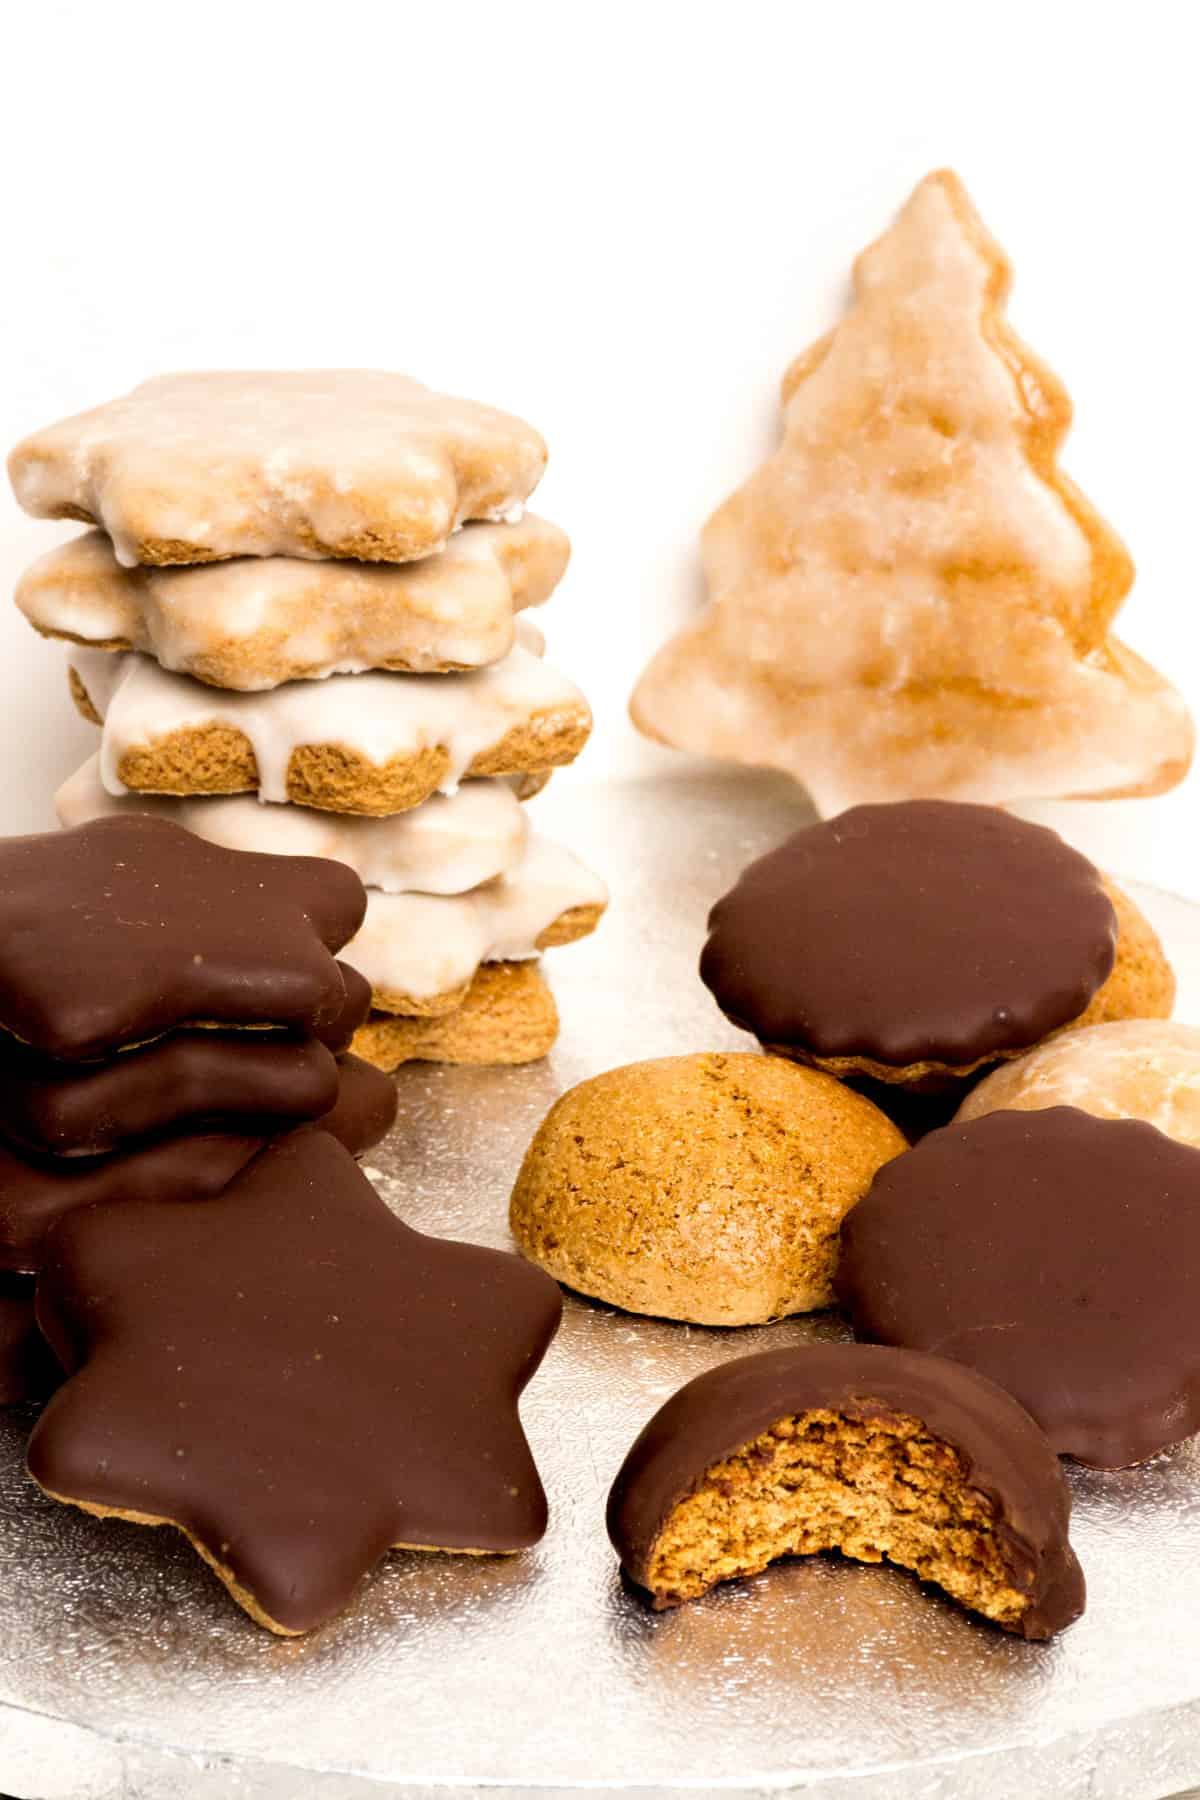 A stack of star shaped lebkuchen, and a pile of round lebkuchen.